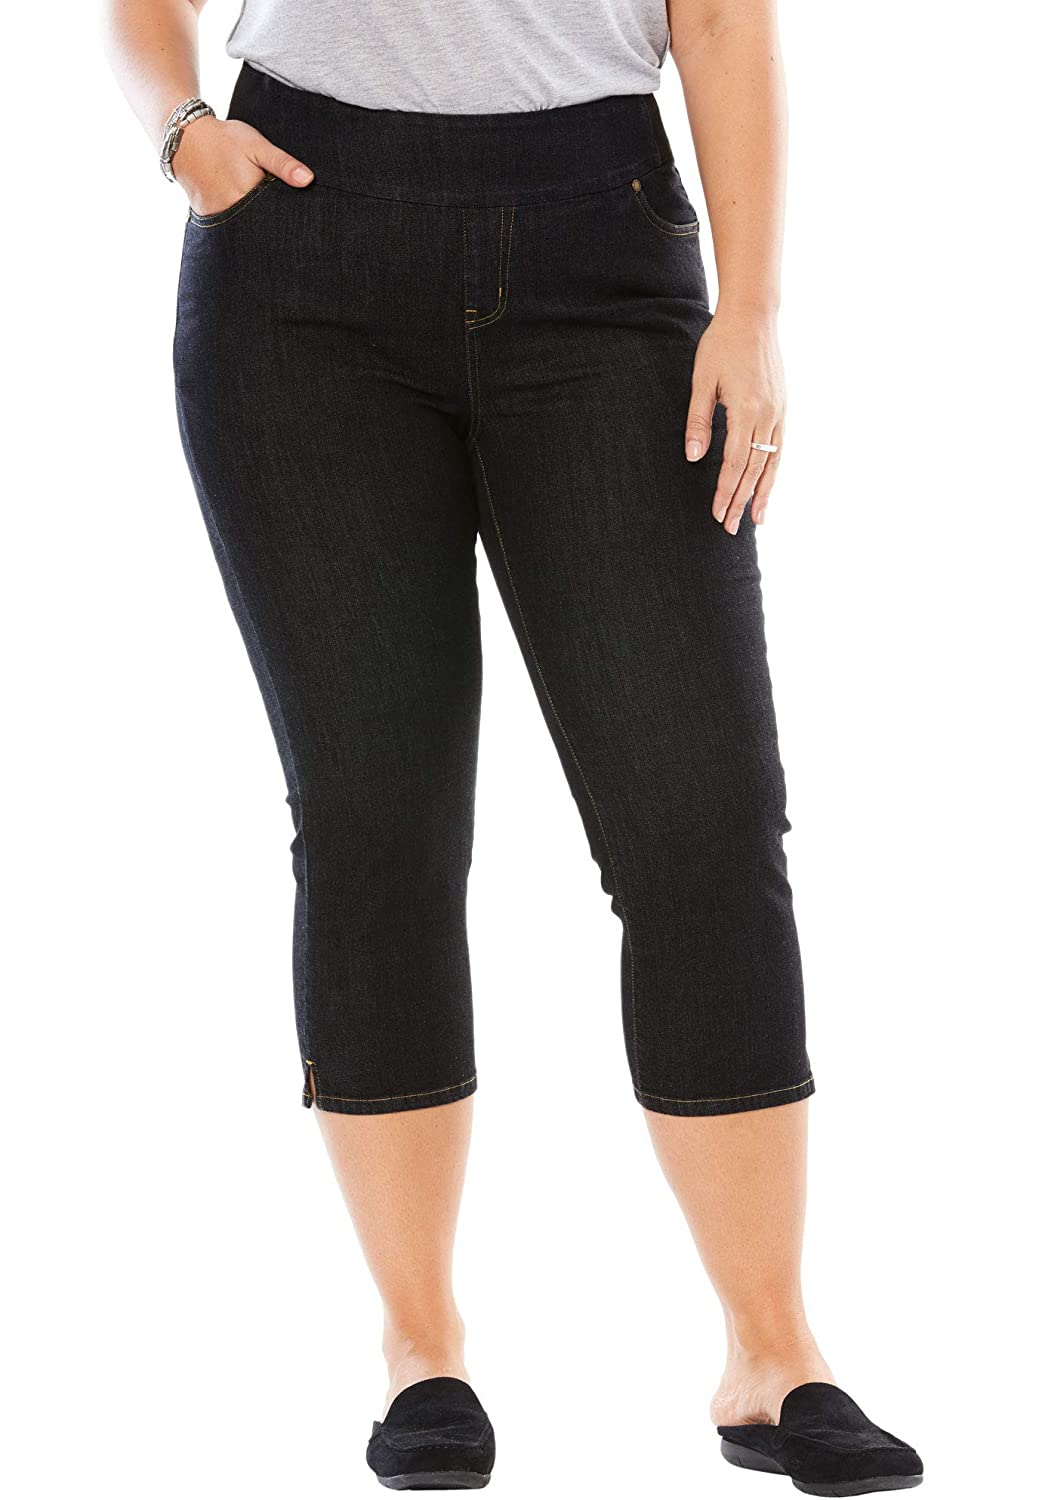 2647d4b4c3a Woman Within Women's Plus Size Petite Smooth Waist Capri Jean at Amazon  Women's Jeans store